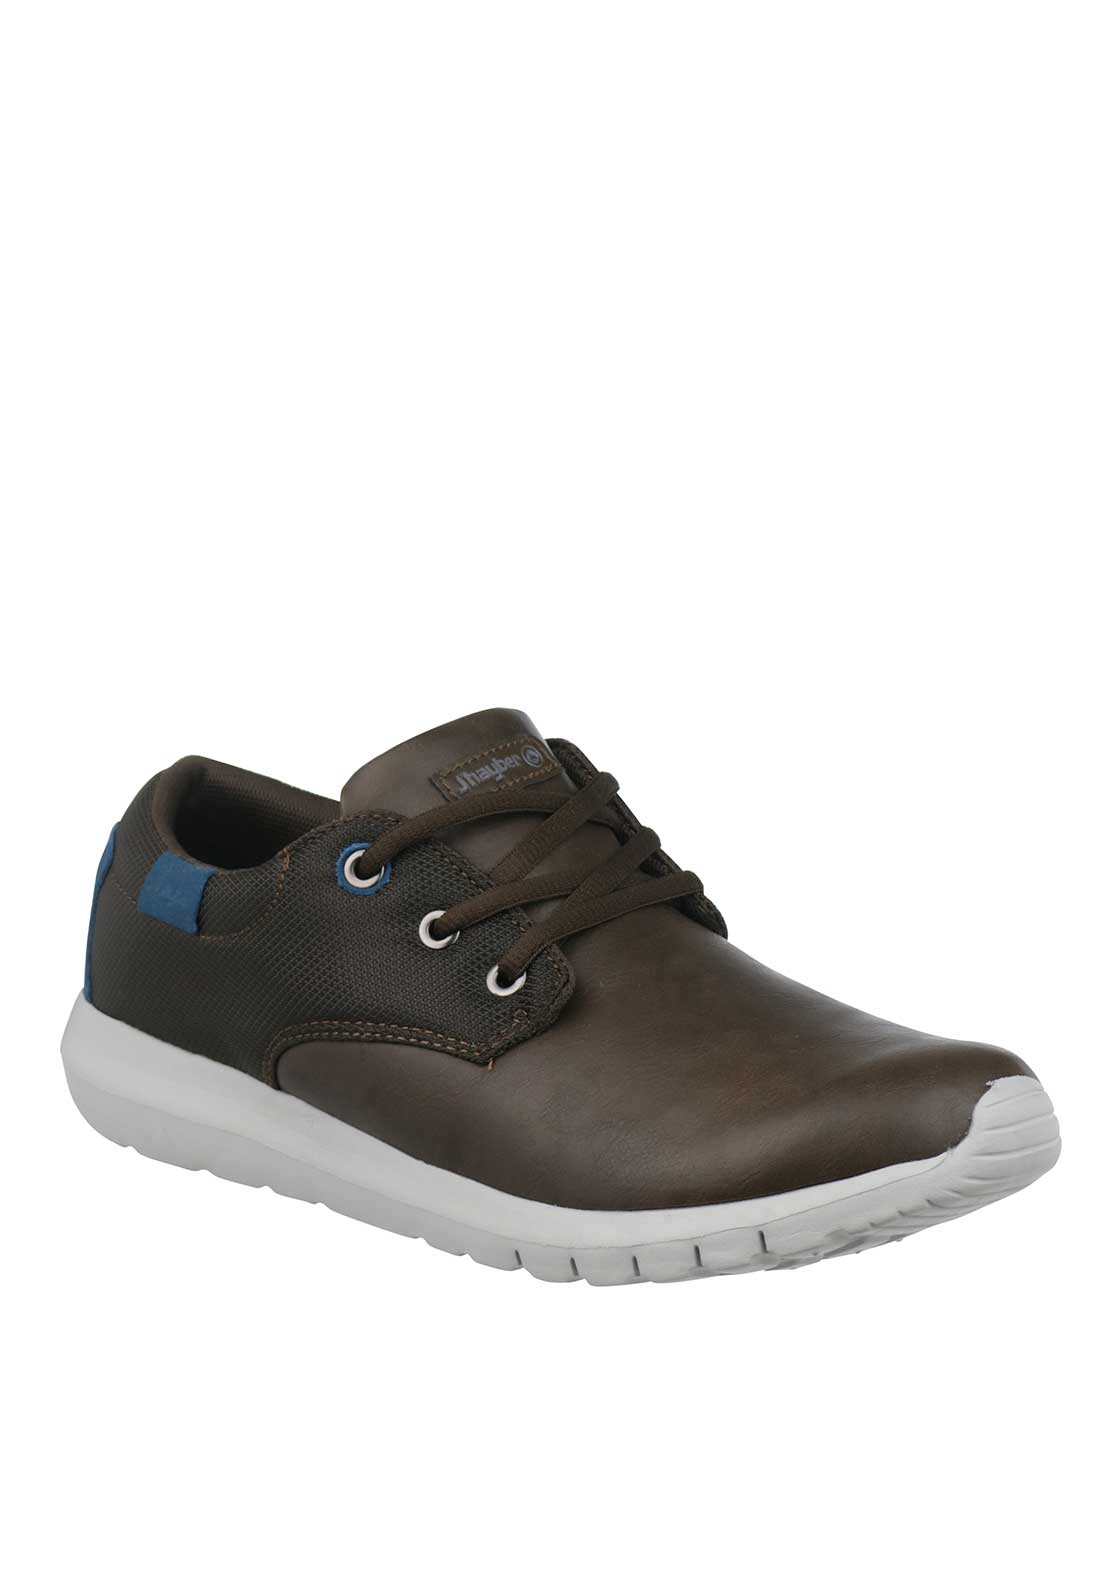 J'hayber Mens Chabeta Trainers, Brown